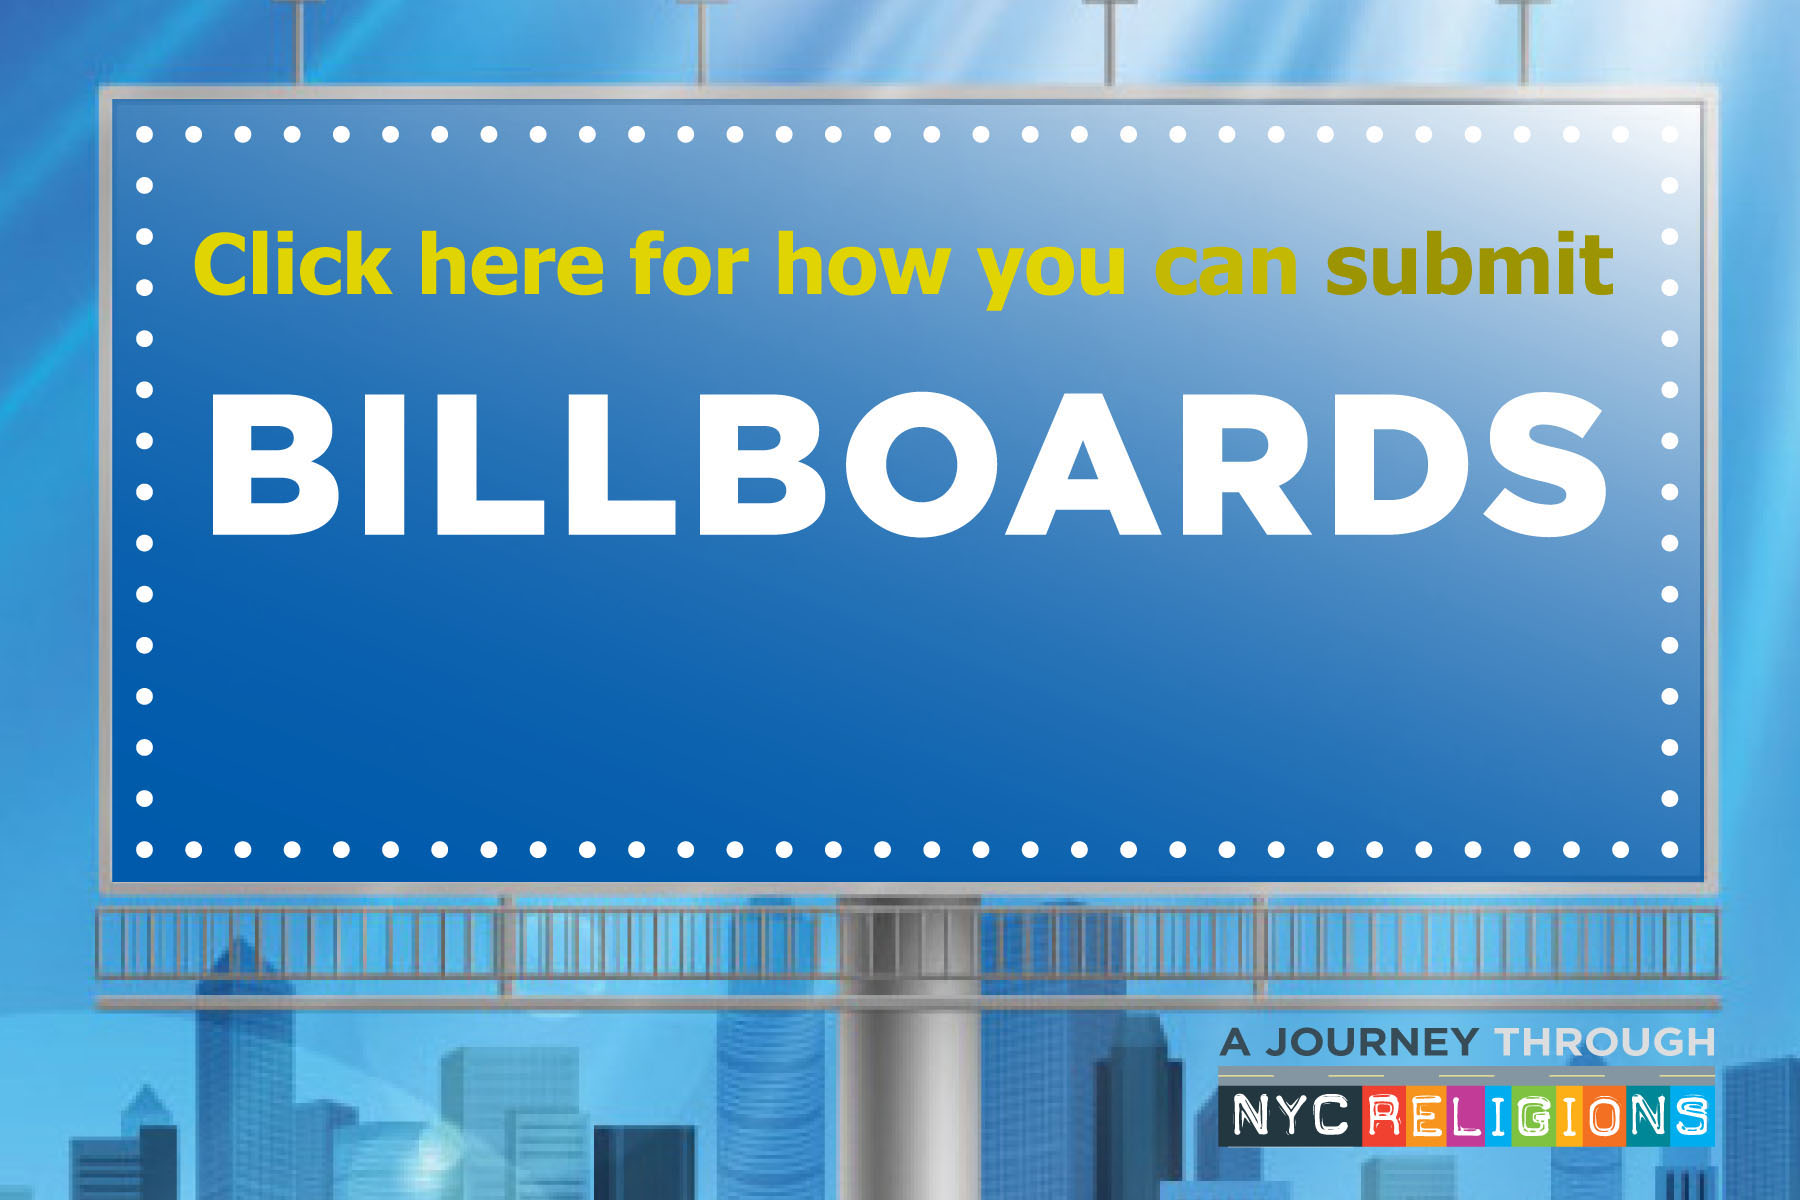 billboards_3blueboard_whitetype-2_how